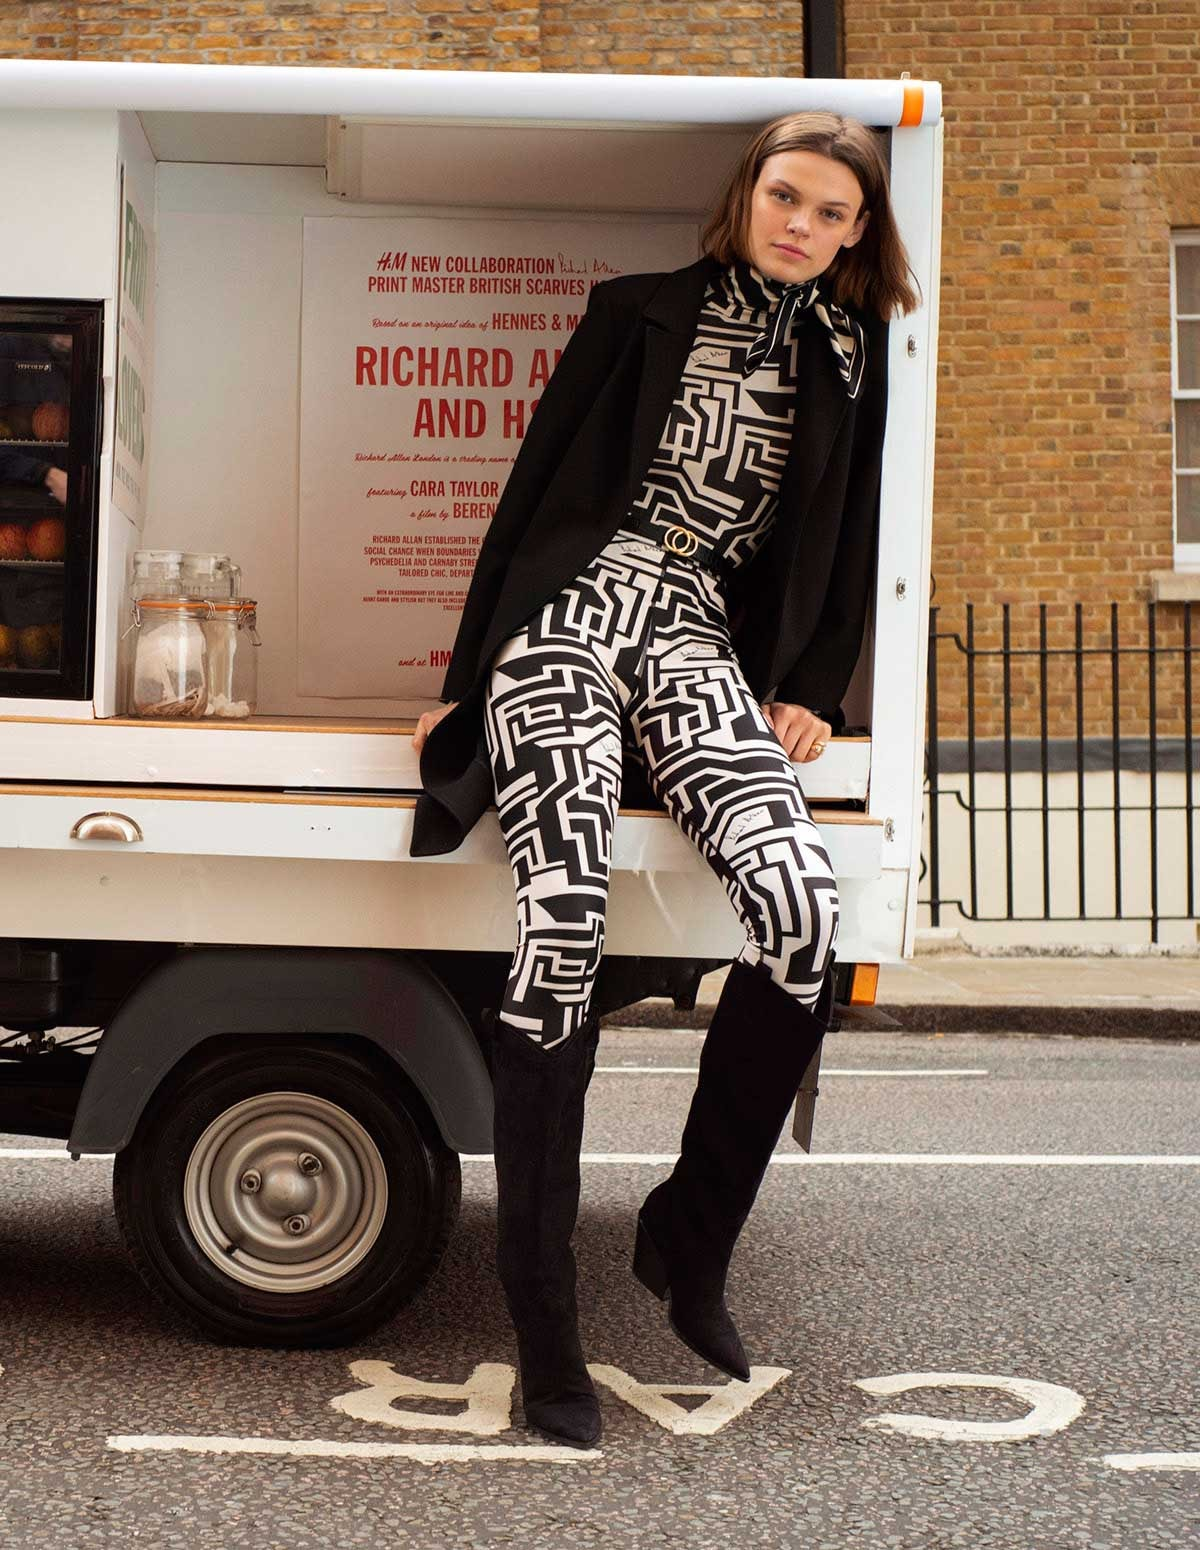 H&M collaborates with Richard Allan for 1960s-inspired womenswear collection